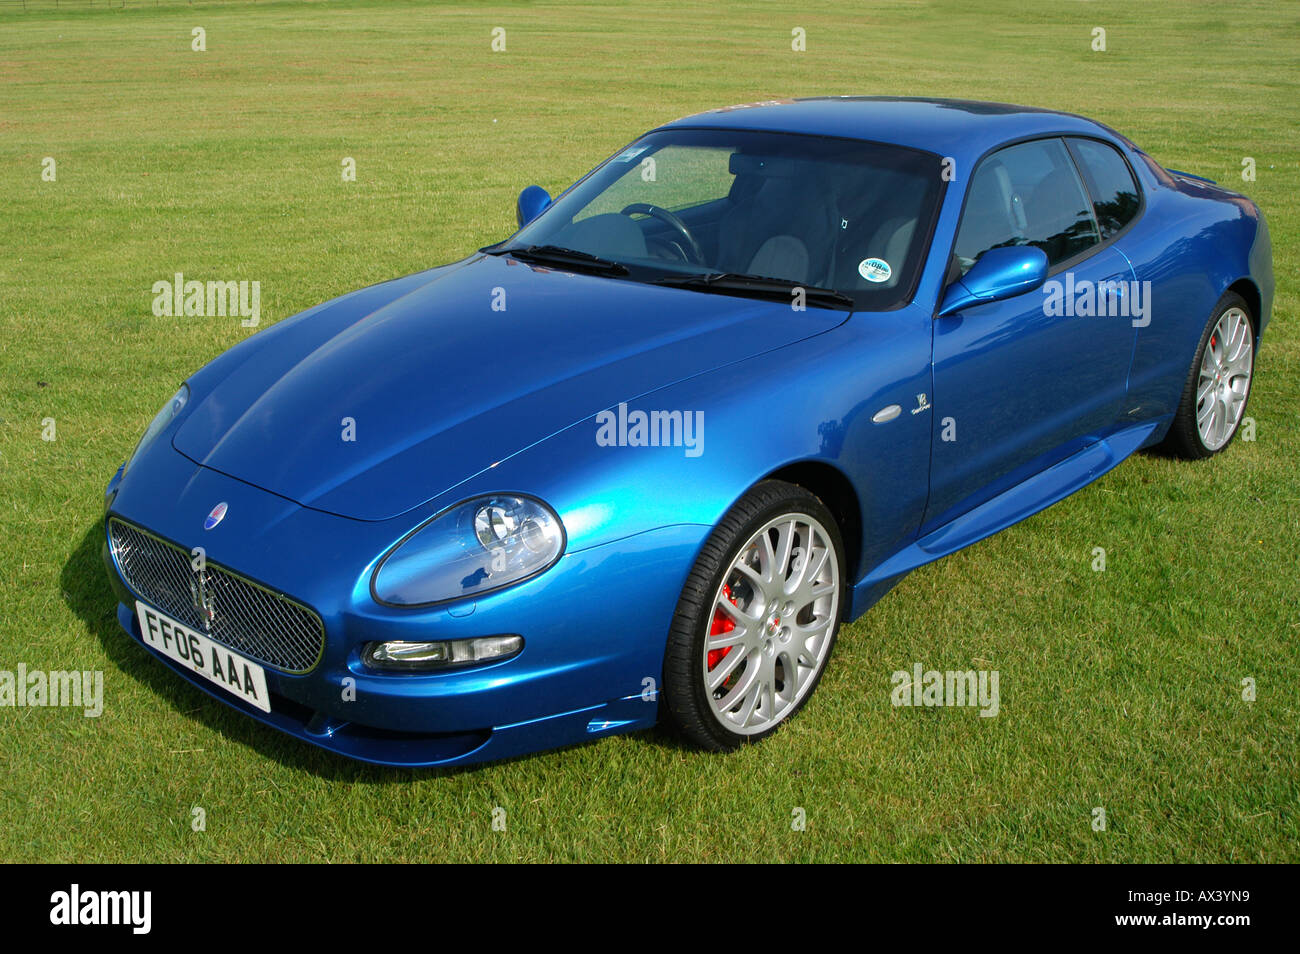 blue maserati coupe gt 2006 sports car stock photo royalty free image 9554840 alamy. Black Bedroom Furniture Sets. Home Design Ideas